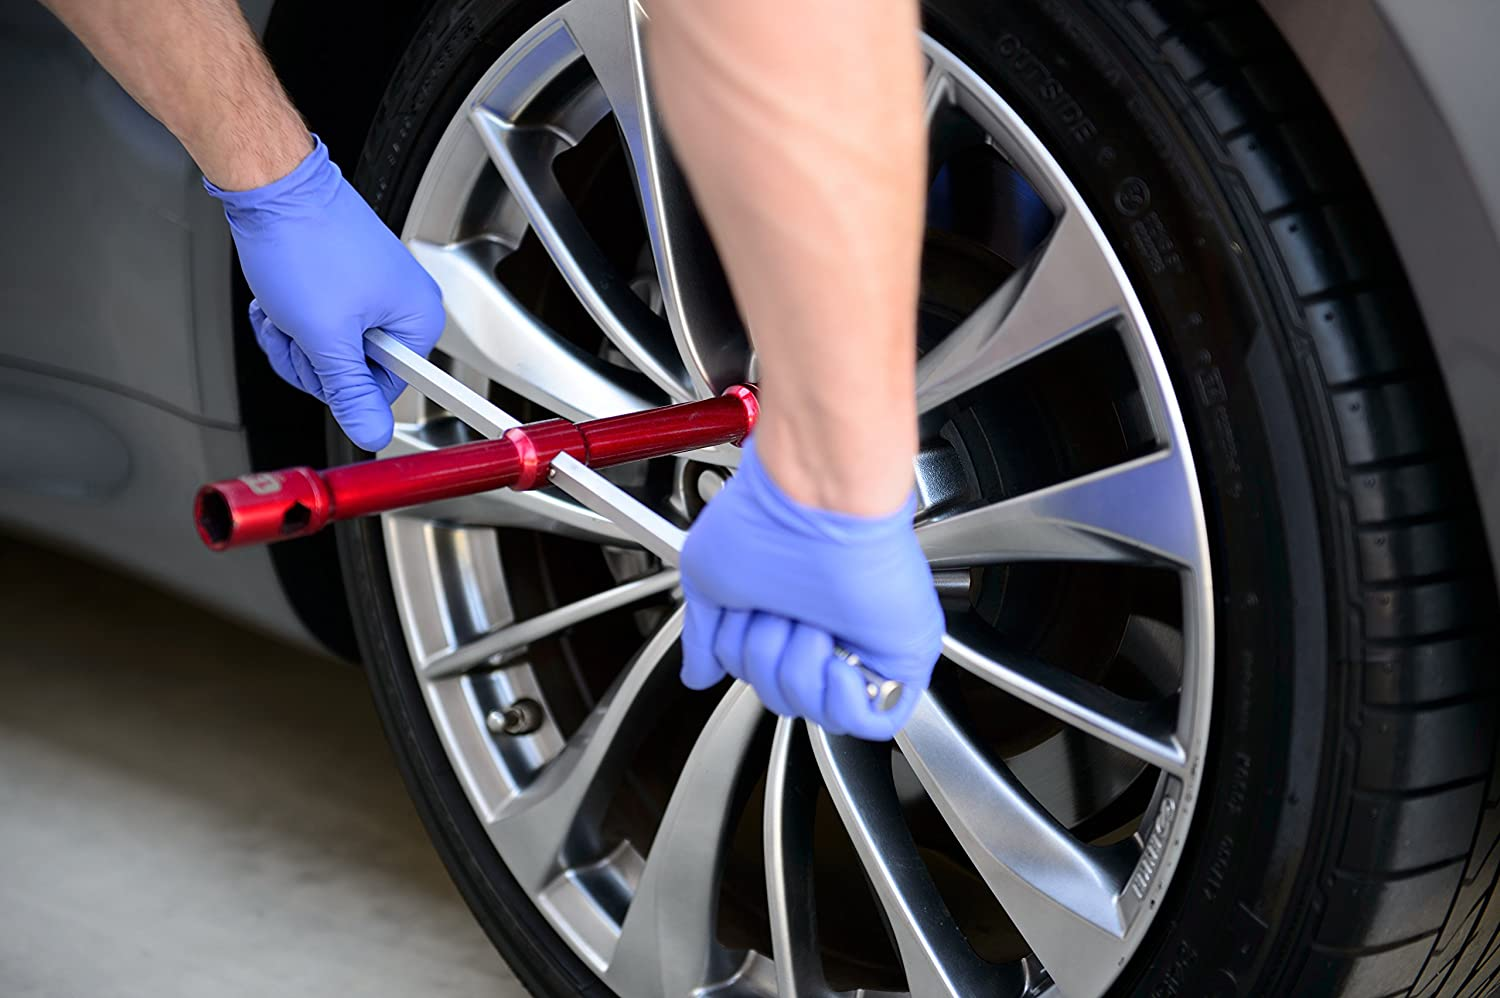 GTE Tools 2X More Torque GTELUG1 Super-Strong Tire Iron /& Lug Nut Remover LugStrong 26 Universal Compact Lug Wrench/Set /Never Get Stuck on The Road Again